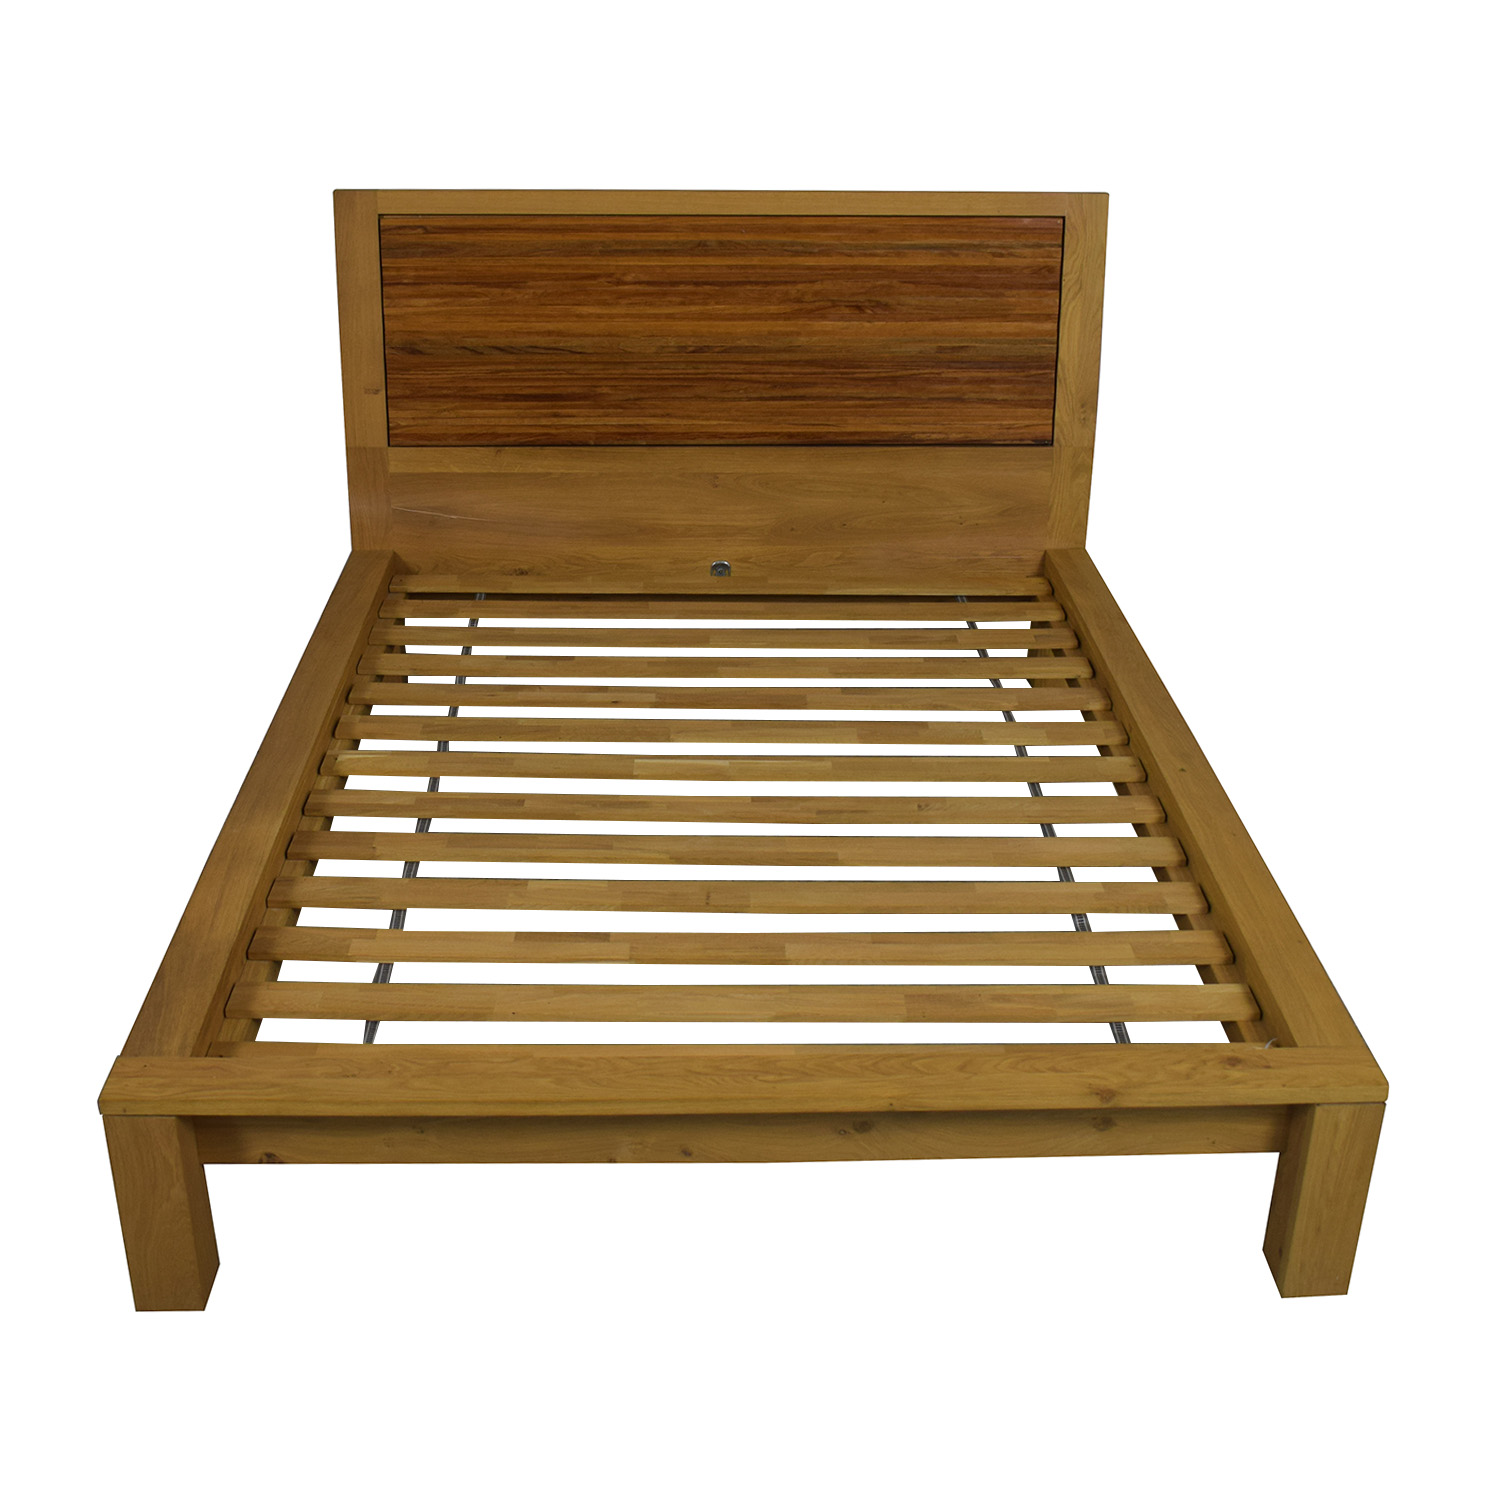 Crate & Barrel Crate & Barrel Queen Bed Frame on sale